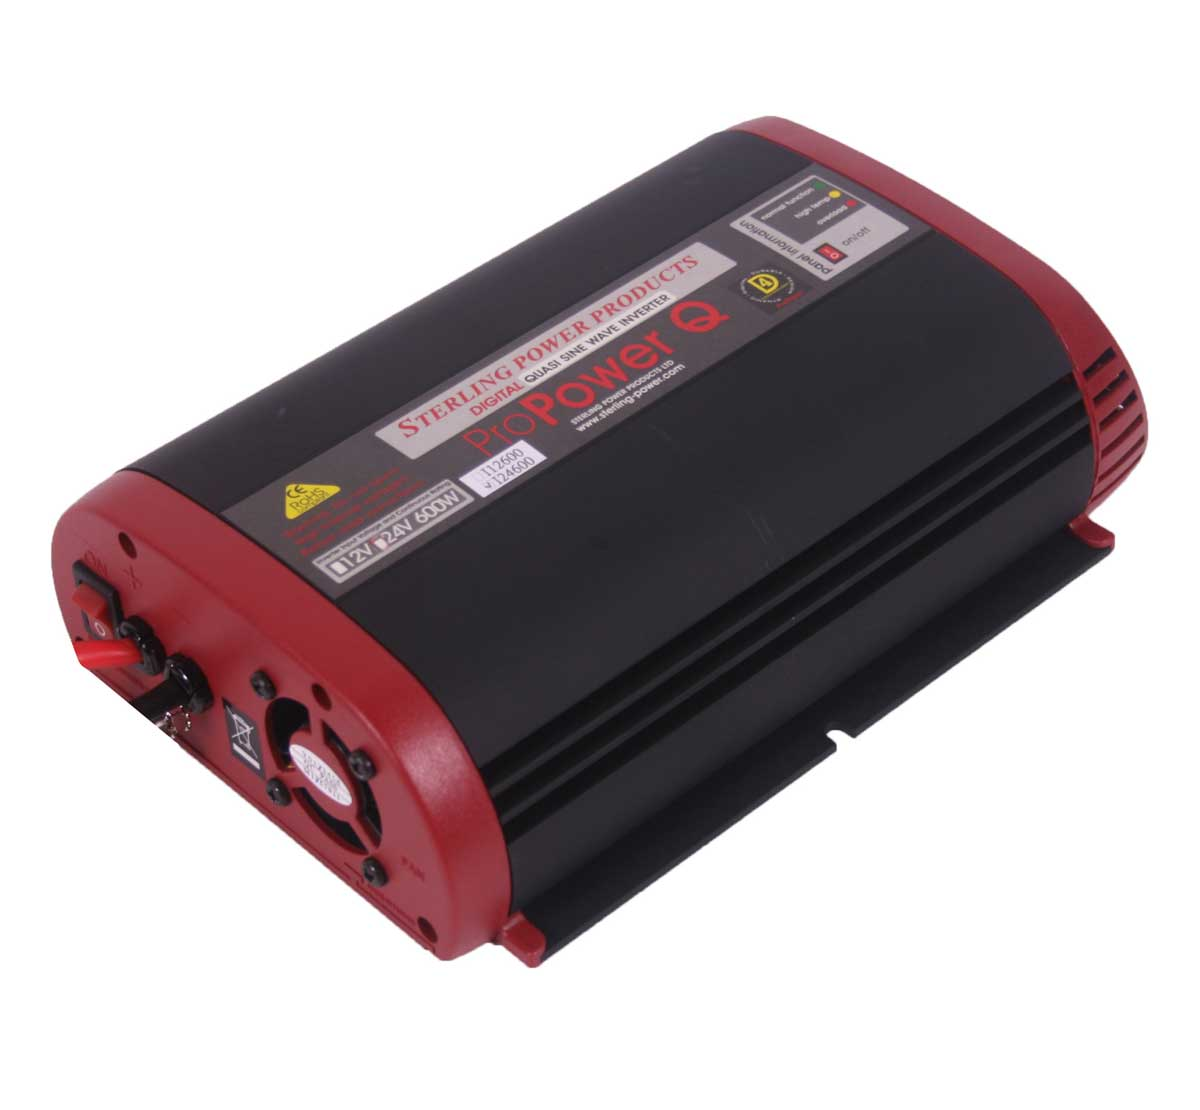 Sterling Power Pro Power Q 600W Quasi Sine Wave Inverter i12600